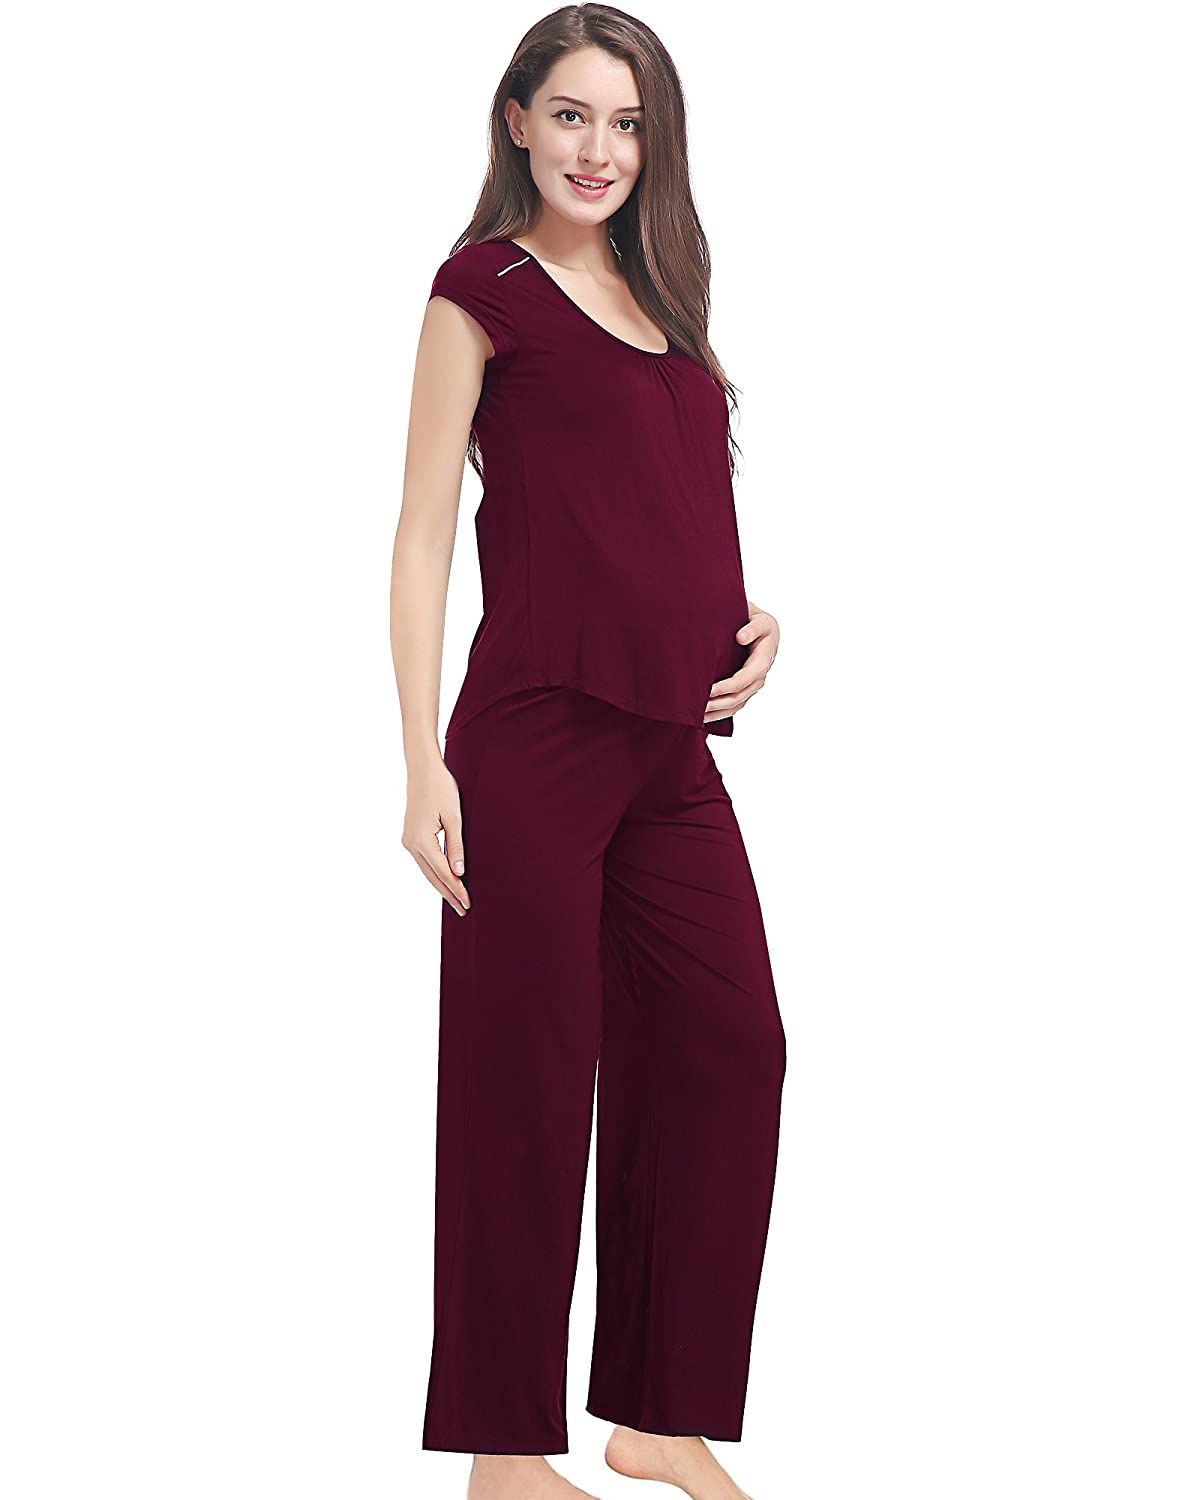 GYS Soft Bamboo Maternity Loungewear Nursing Pajama Pants Set AMN-702T